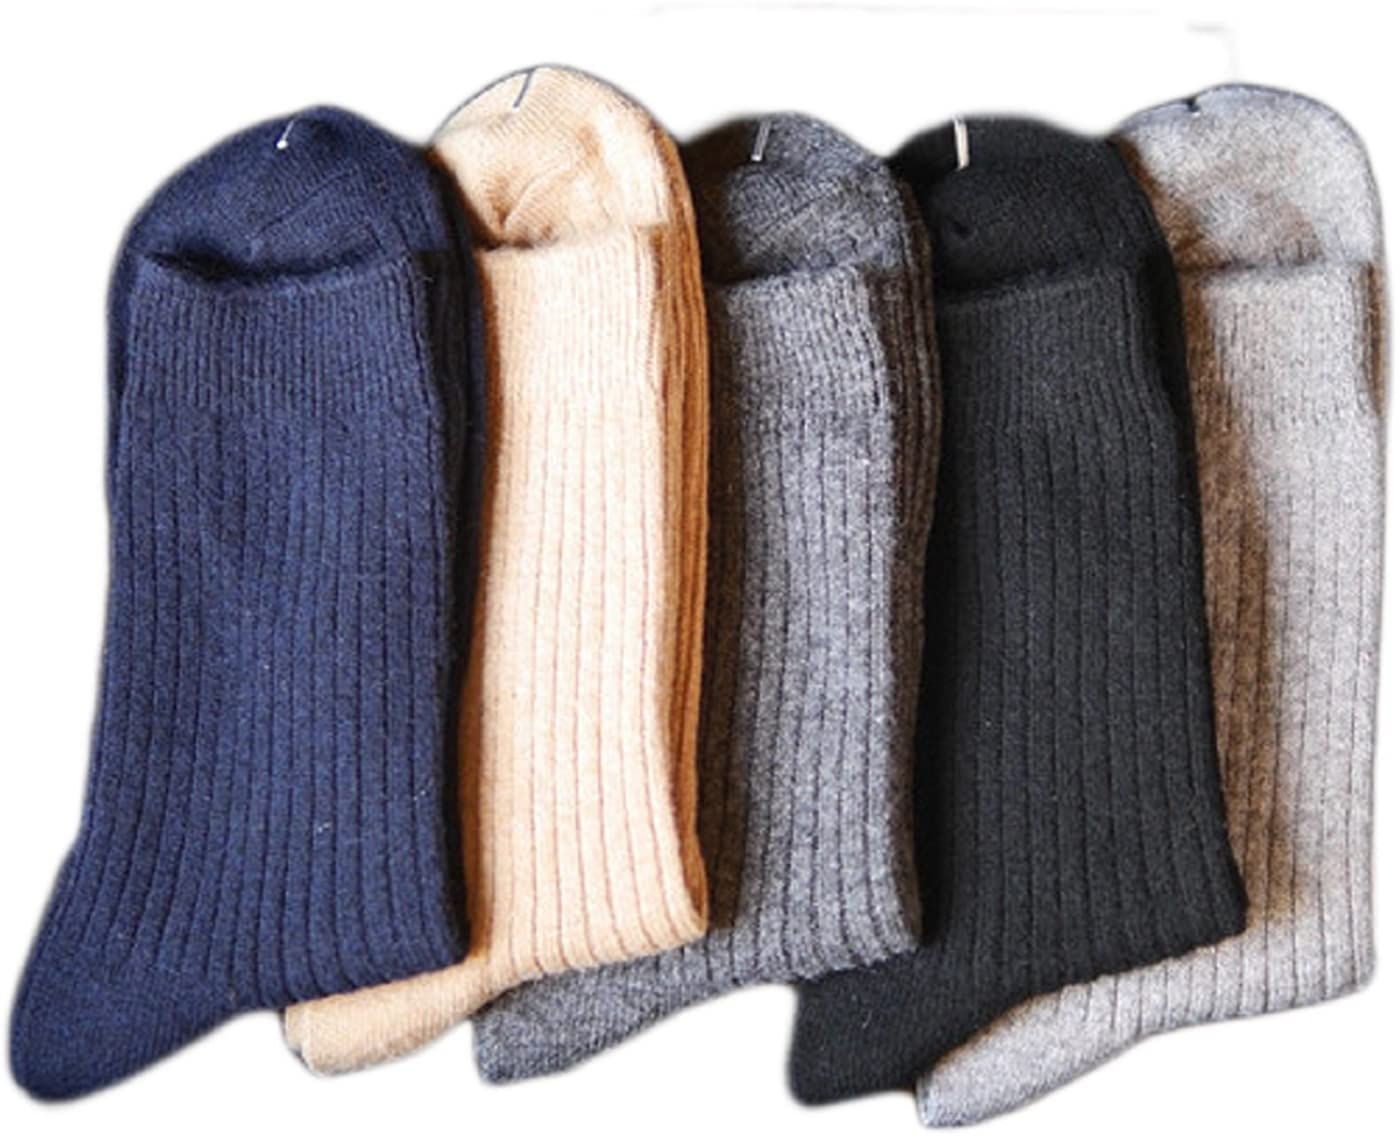 Lian LifeStyle Men's 4 Pairs Pack Wool Blend Crew Socks Size 7-9 Casual